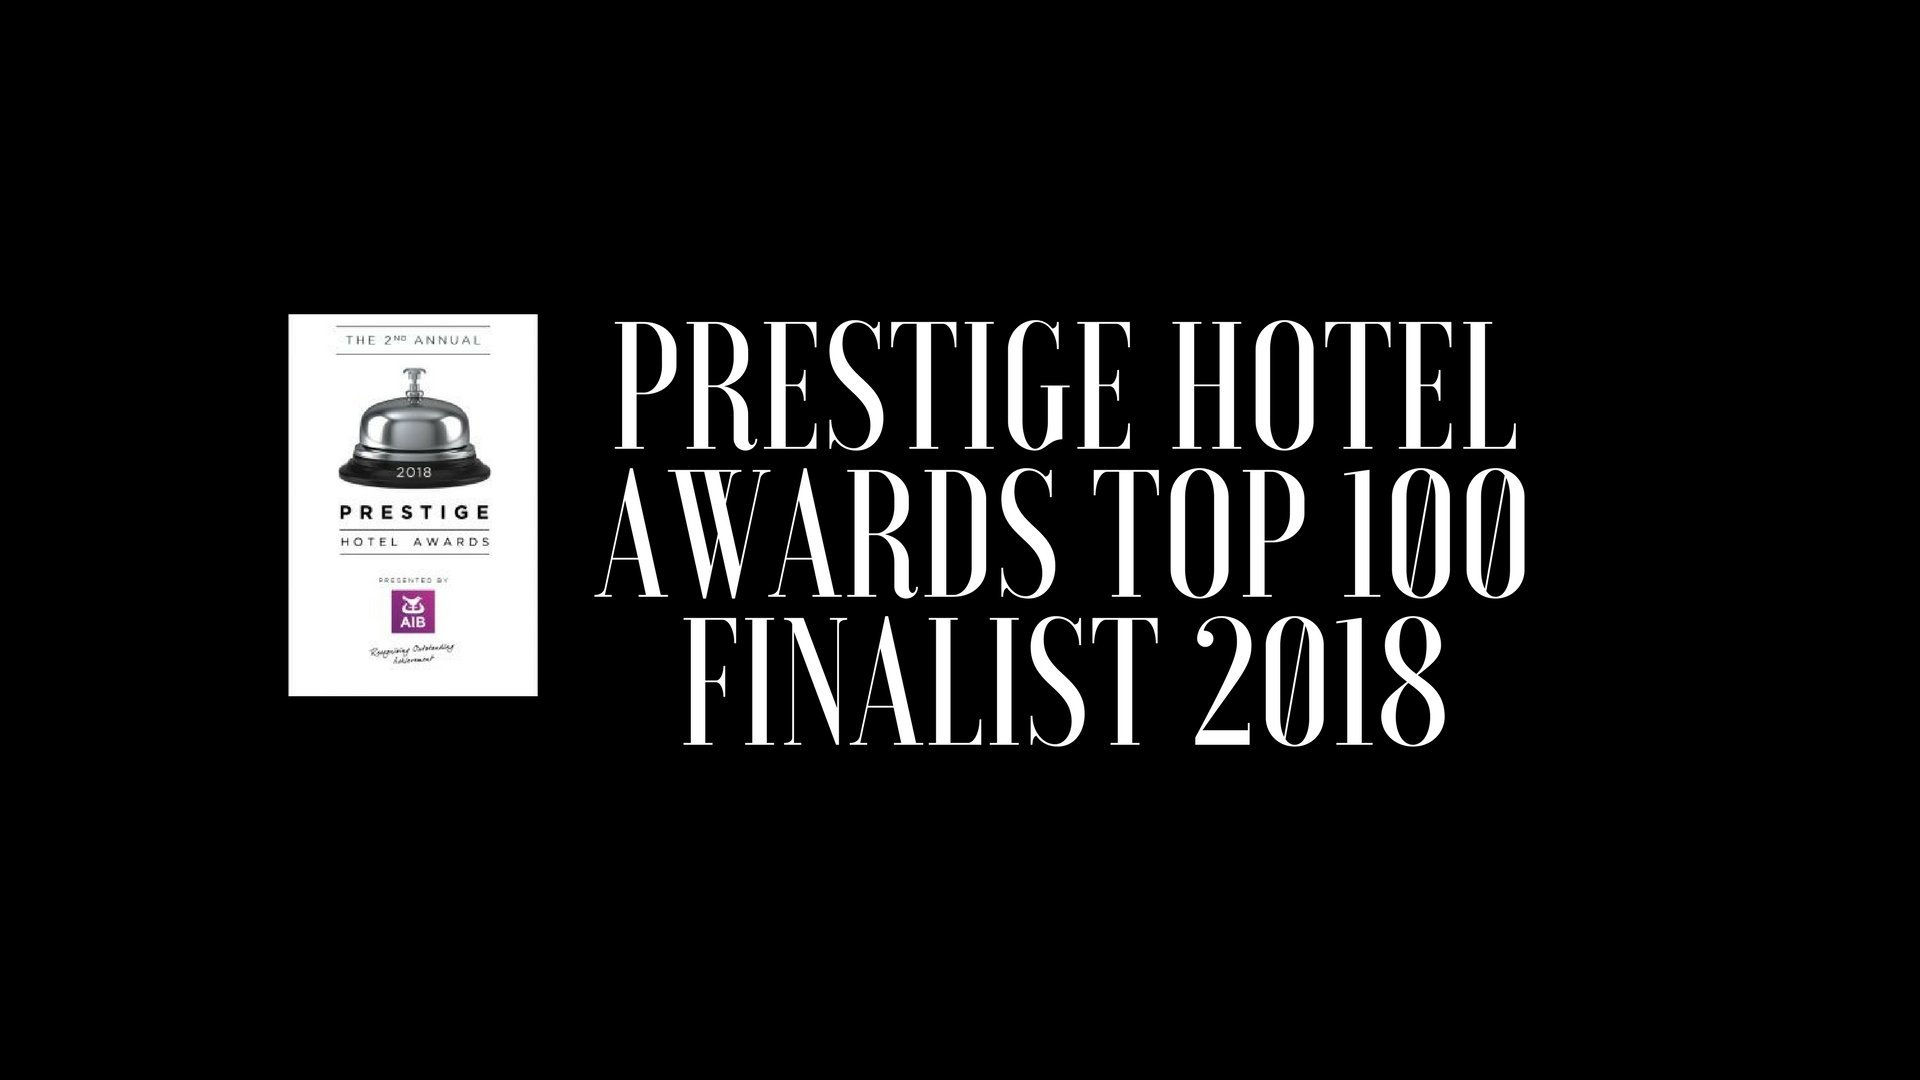 We Are Finalists In The Prestige Hotel Awards!